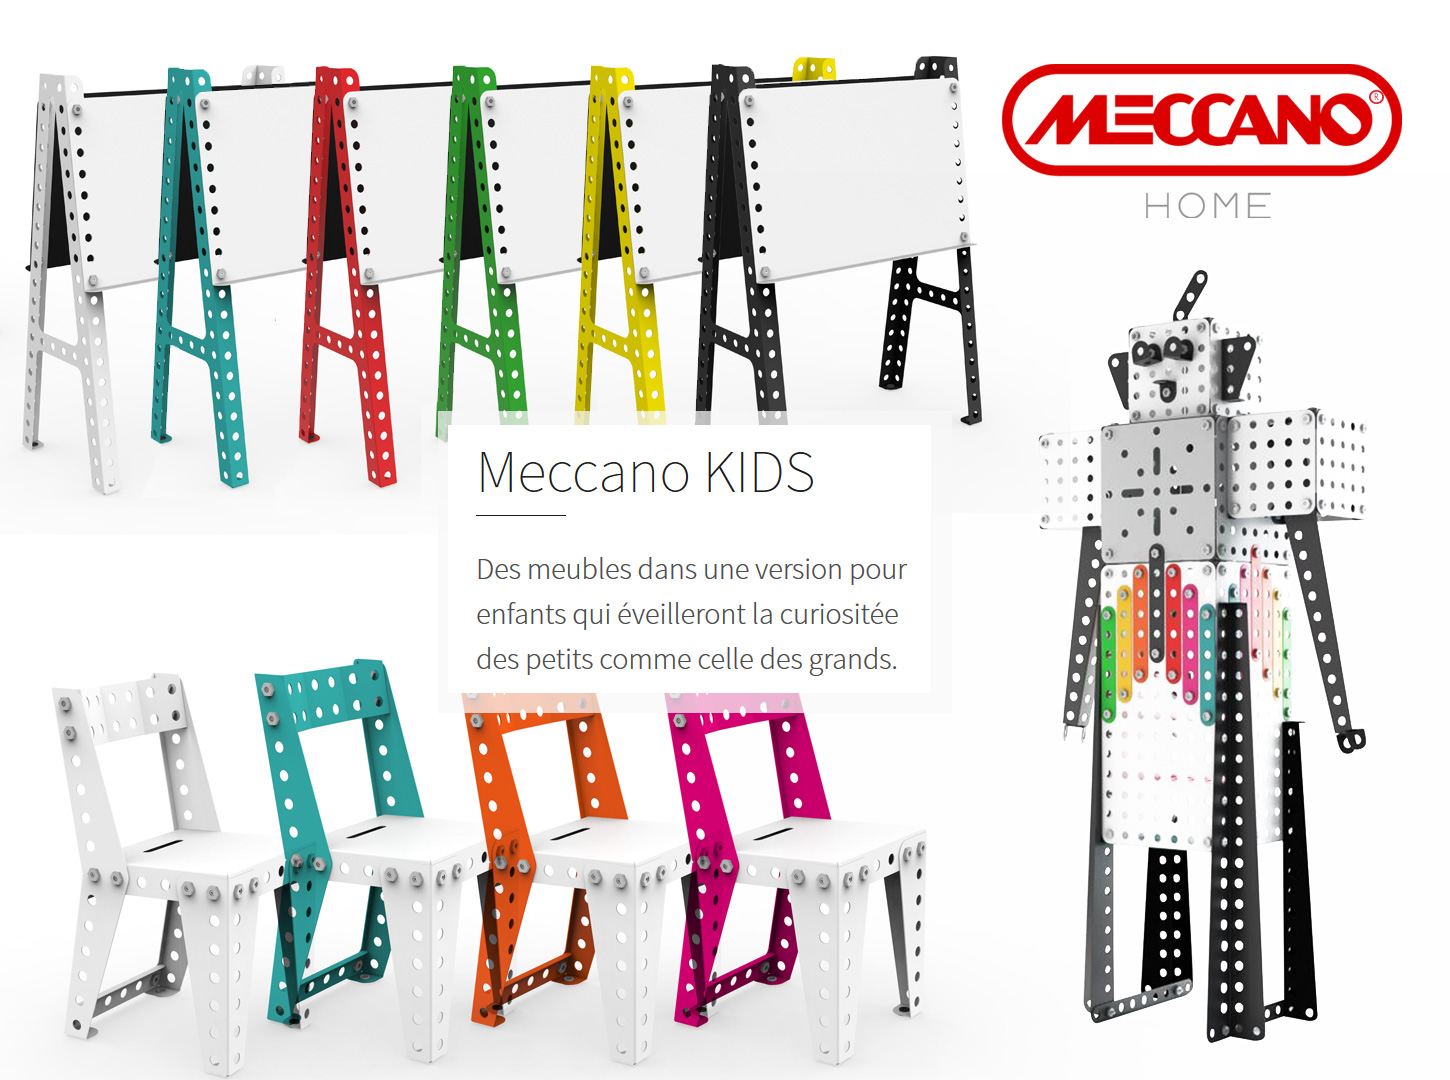 Meccano home Kids